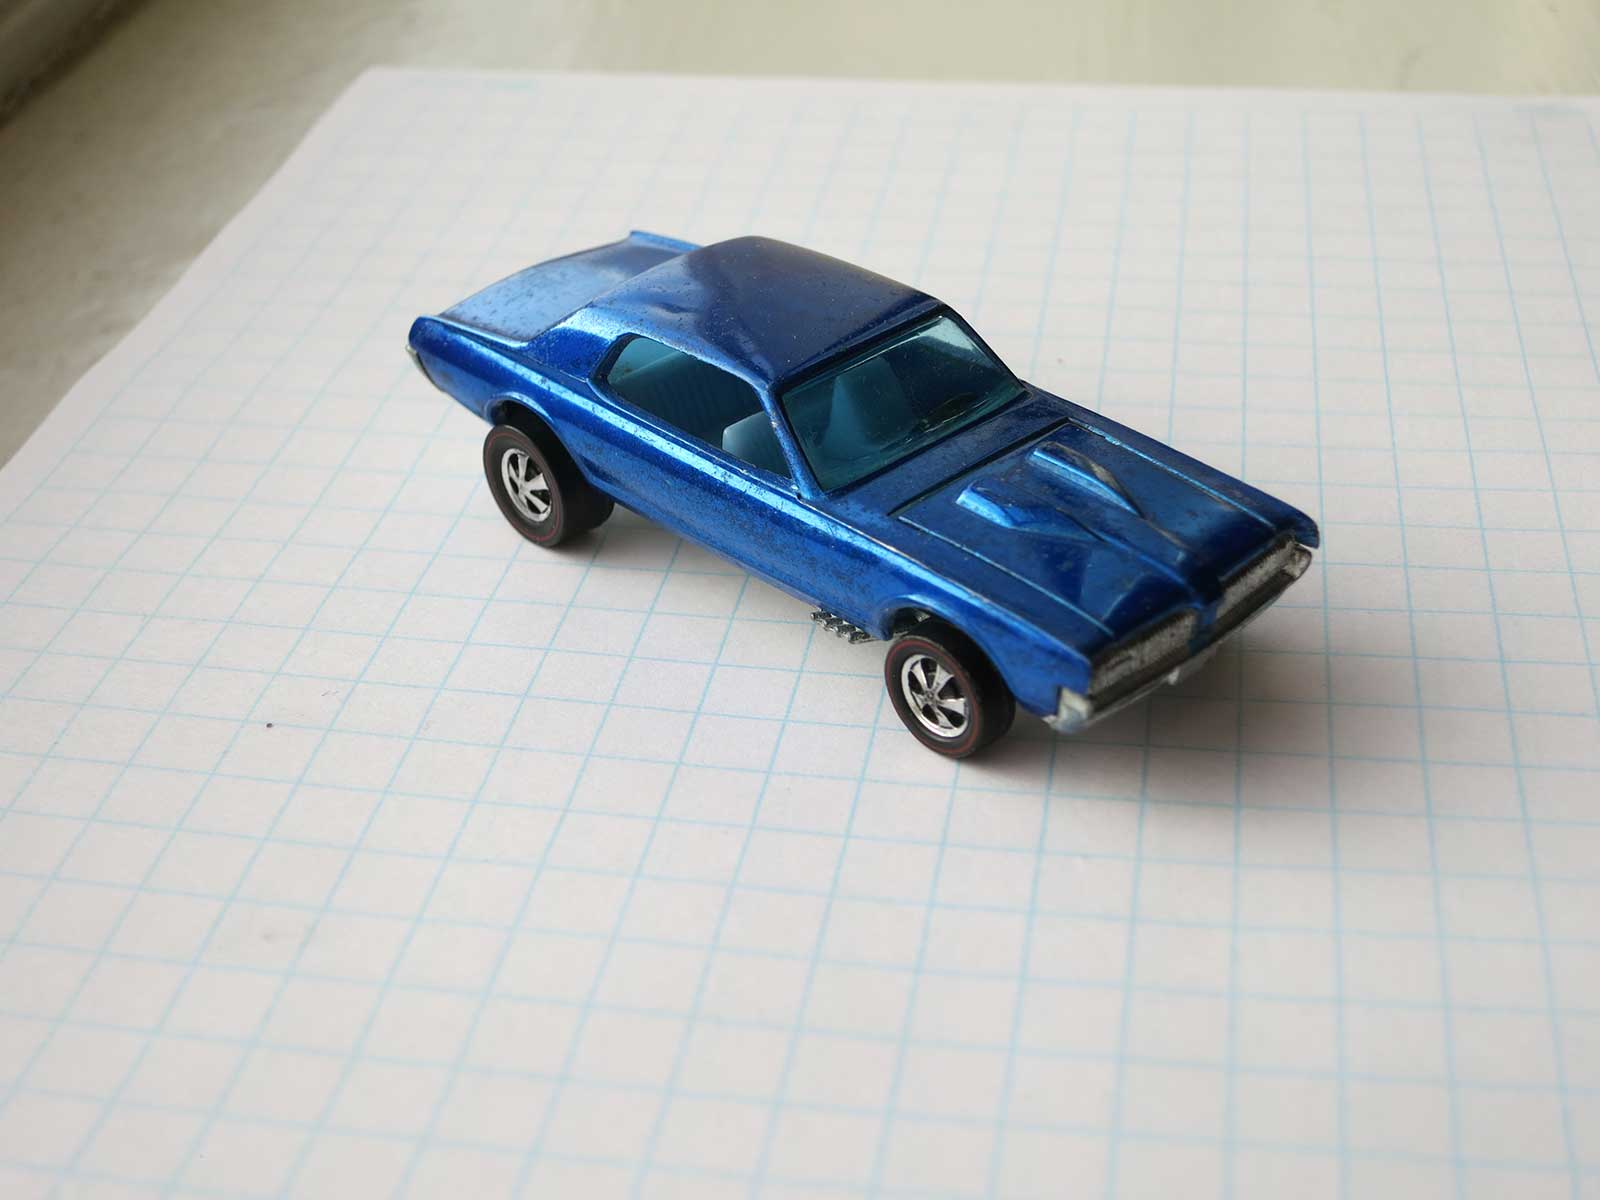 Hot Wheels Redline Blue Custom Cougar with Early Production Identifiers HK